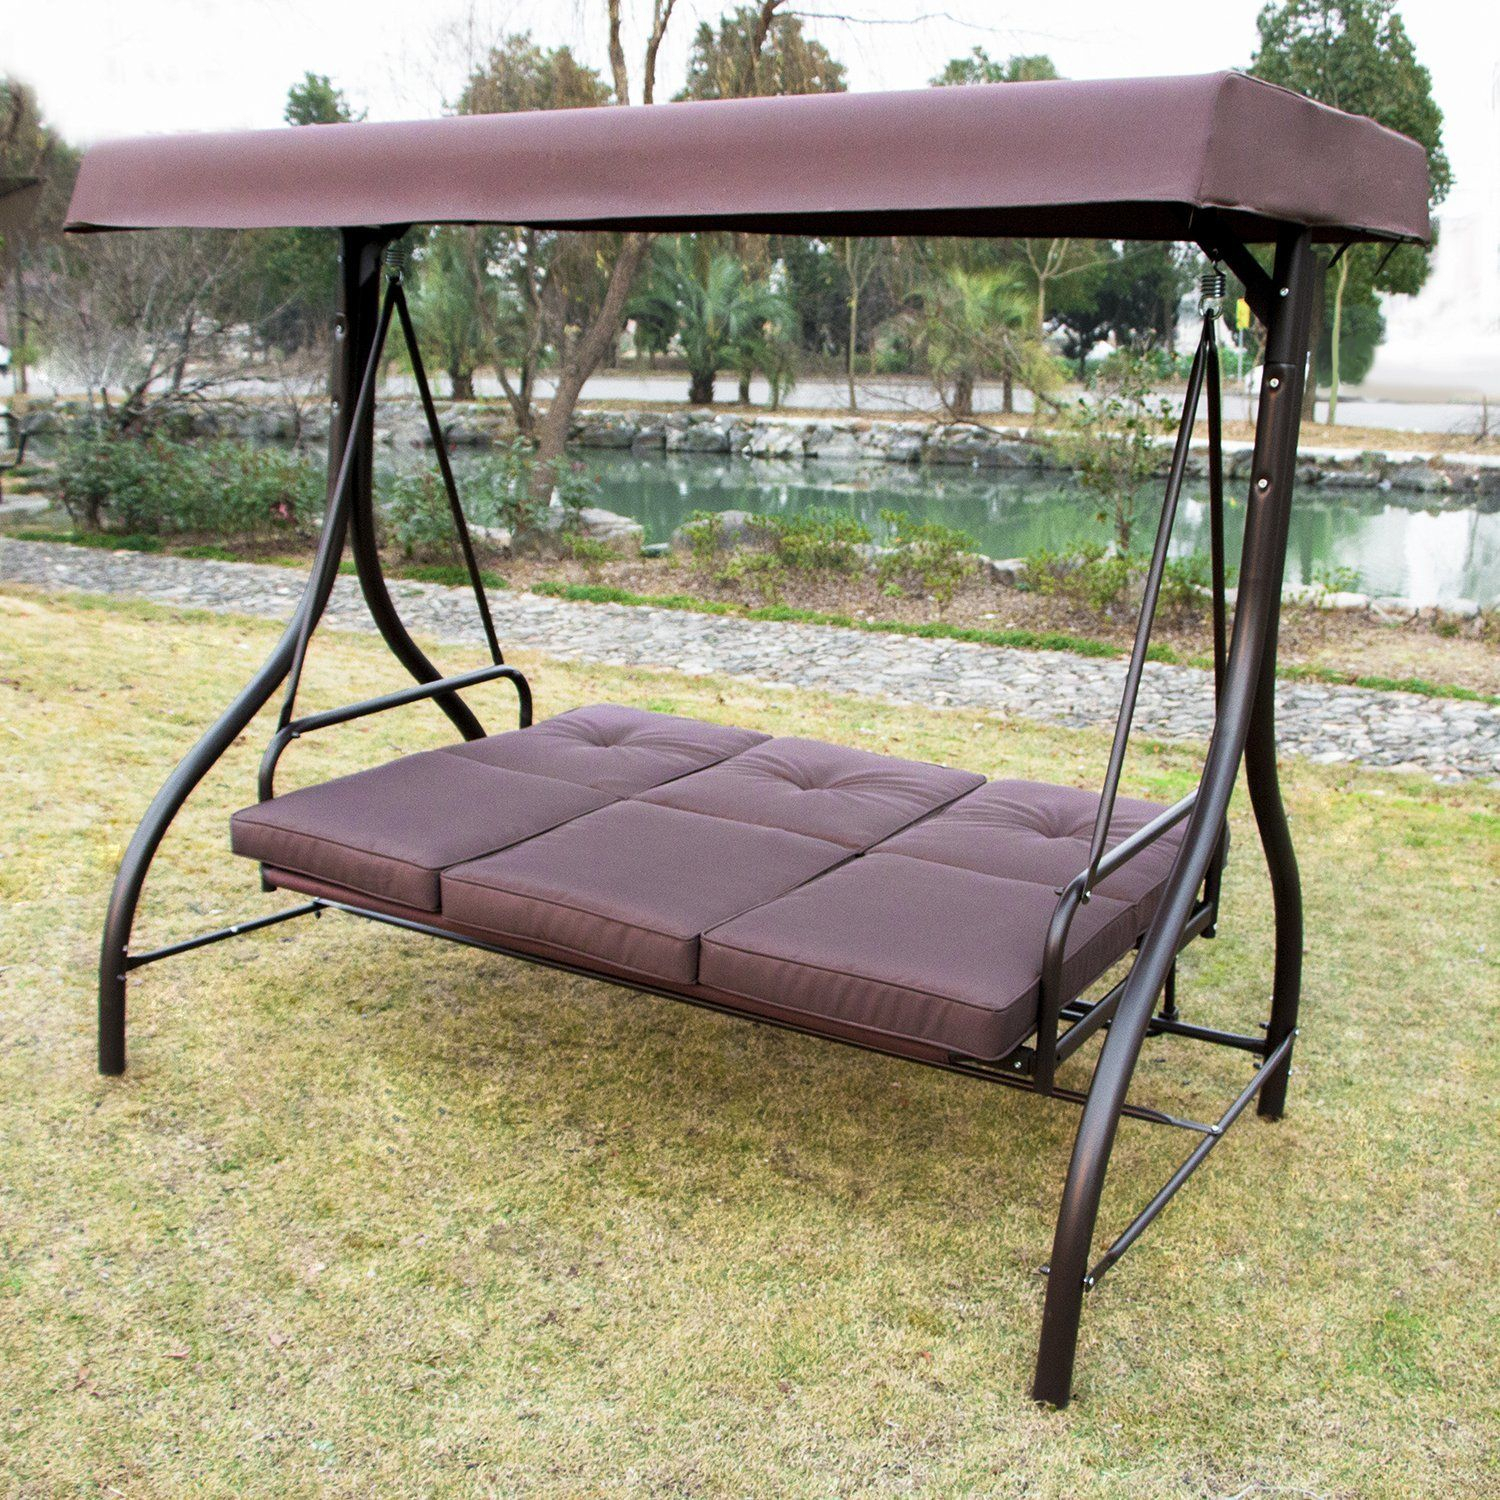 Amazon : Summer Promotion Outdoor Garden Yard Patio Throughout Patio Glider Hammock Porch Swings (View 4 of 25)